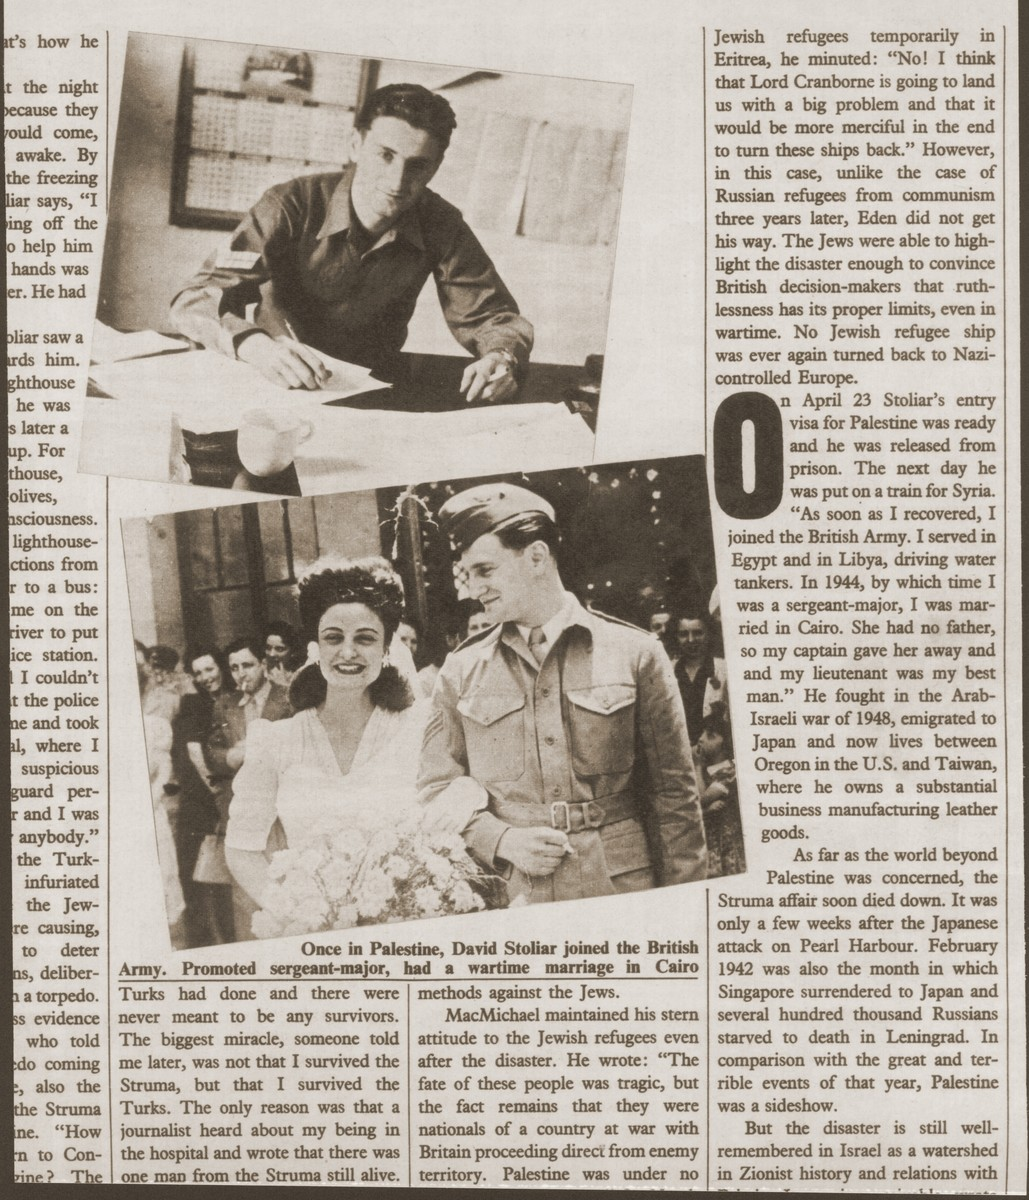 Two snapshots of David Stoliar that appeared in the Sunday Times: at his office in Cairo, and after his wedding in Cairo.